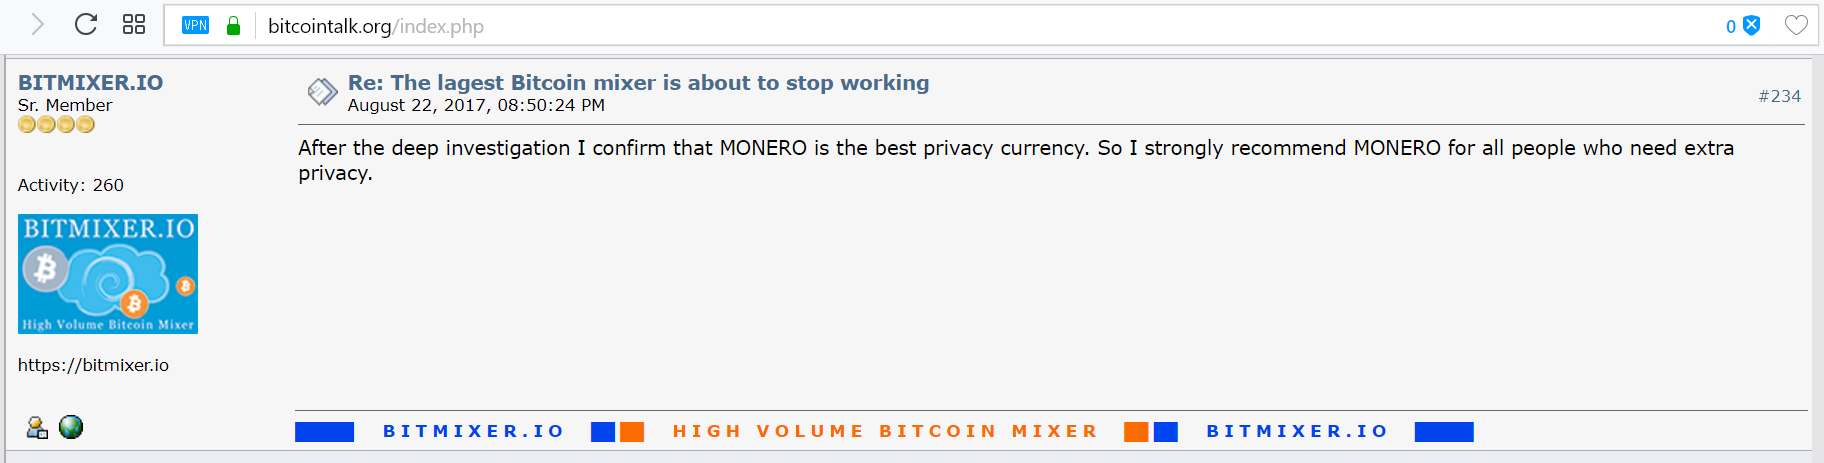 Bitcointalk forum post by Bitmixer.io stating Monero is the best privacy coin.